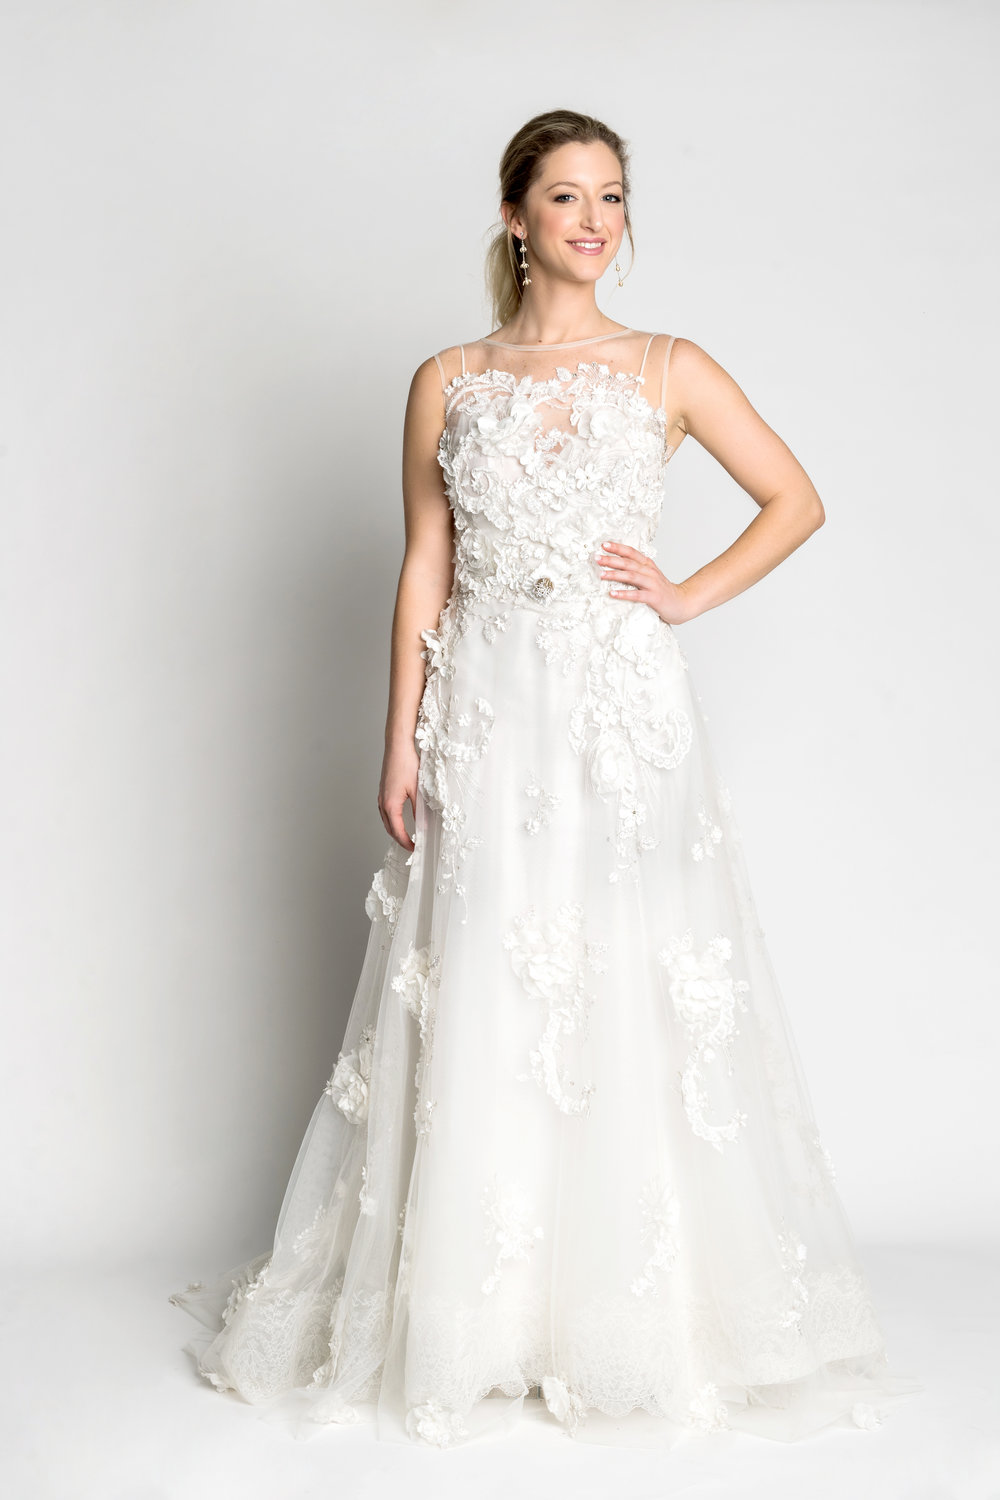 yolan cris wedding dress with lace detail. Perfect for The Alfond Inn wedding